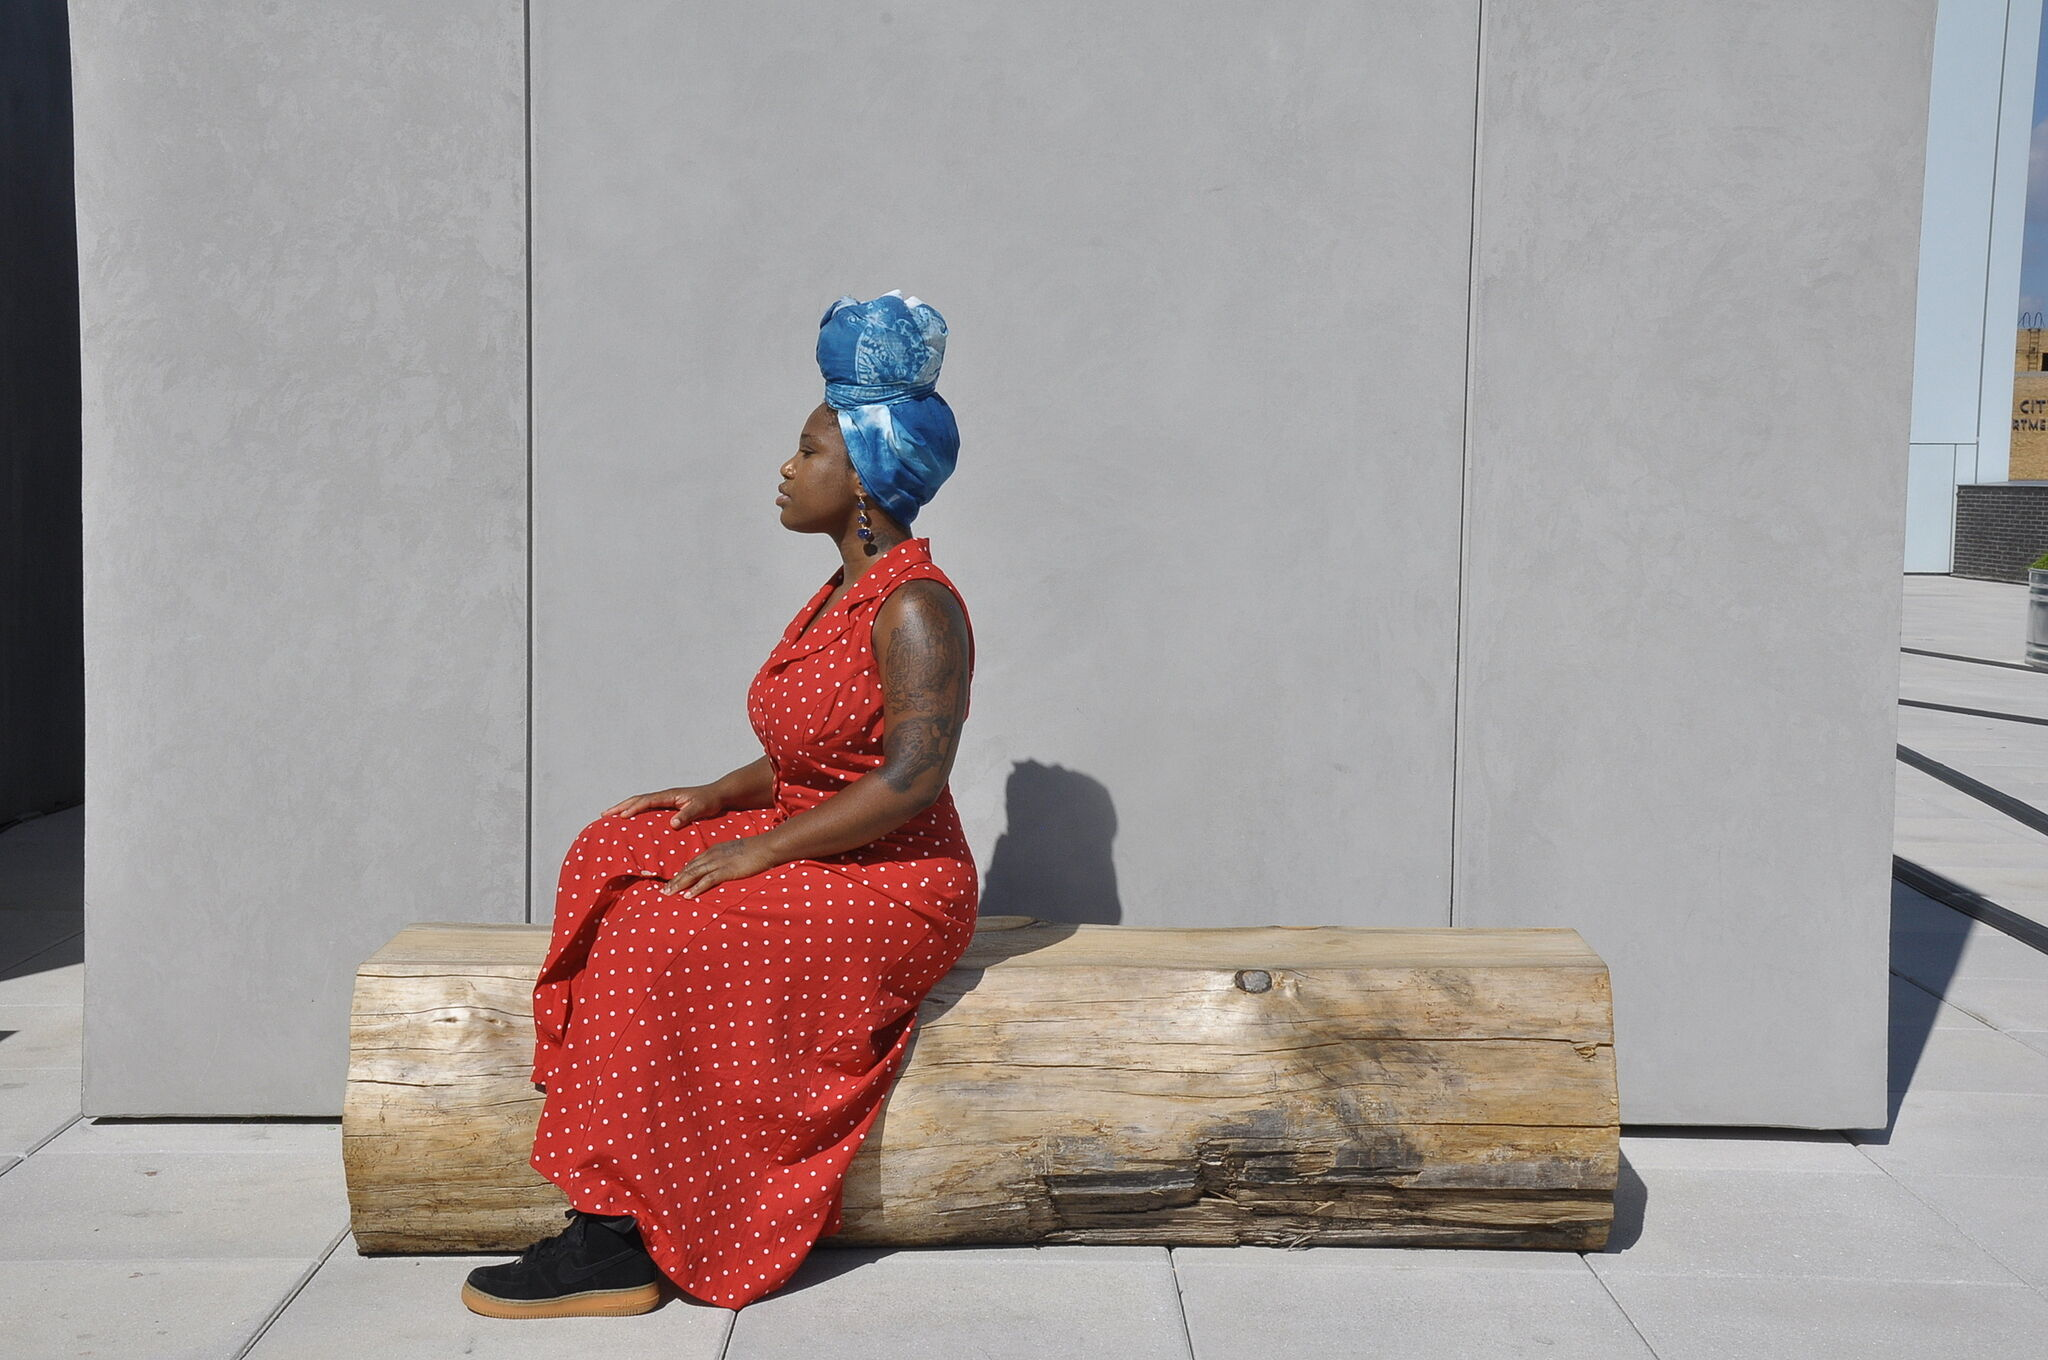 Tamara Renée Davidson performs at the Whitney